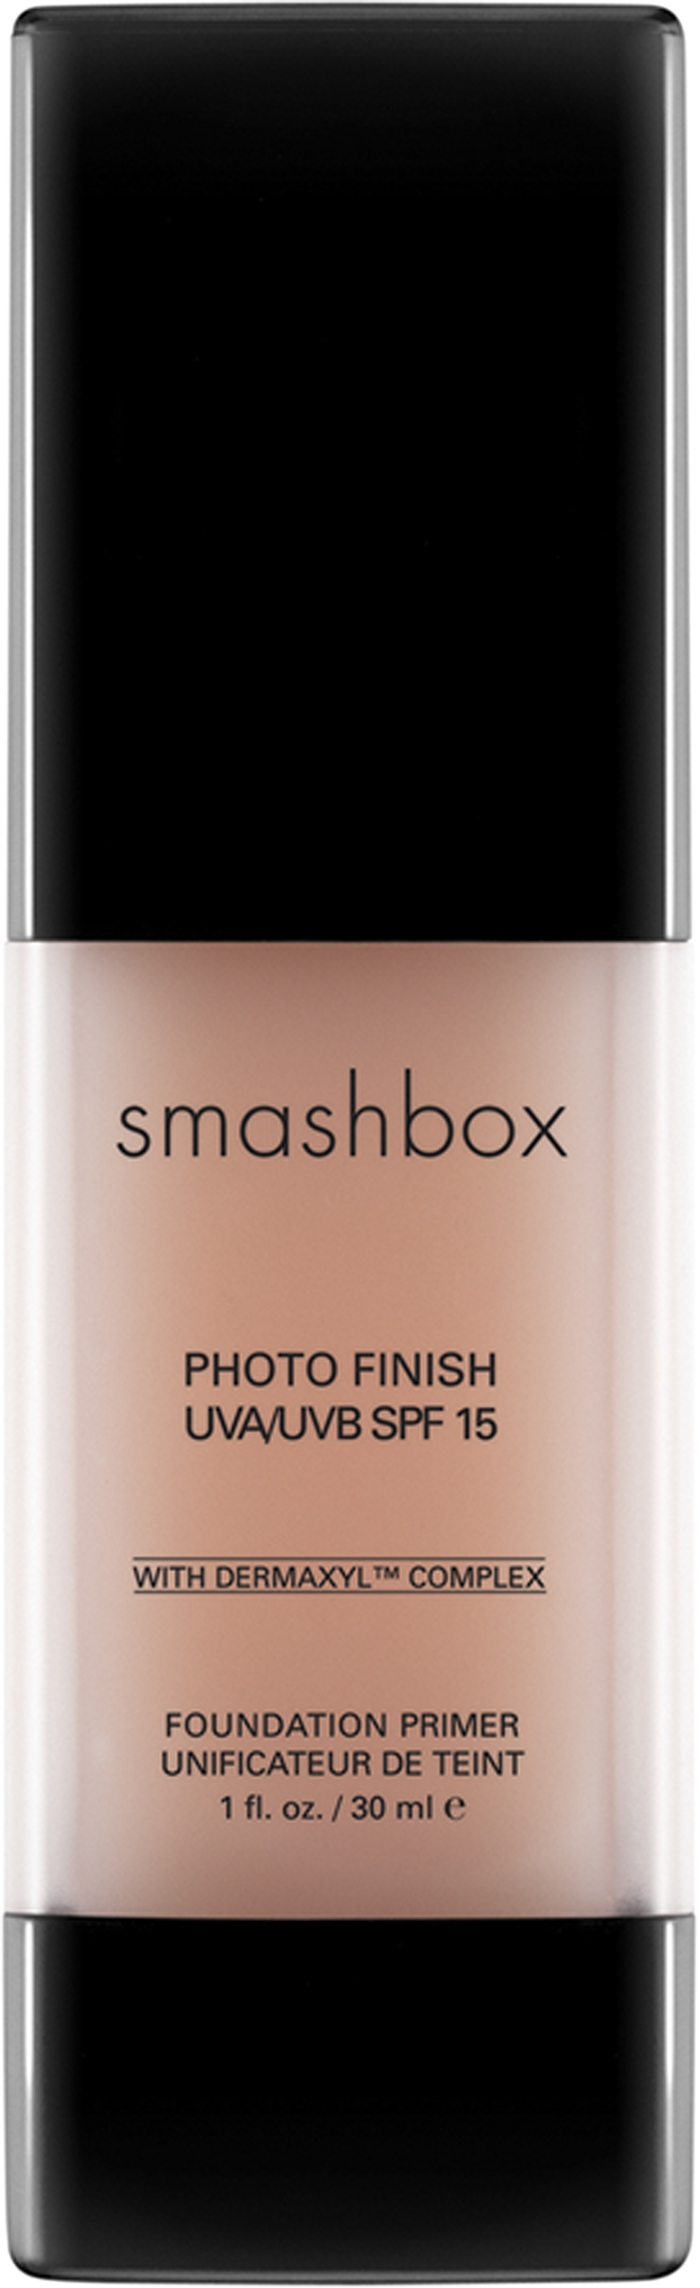 Photo Finish Foundation Primer SPF15 with Dermaxyl Complex